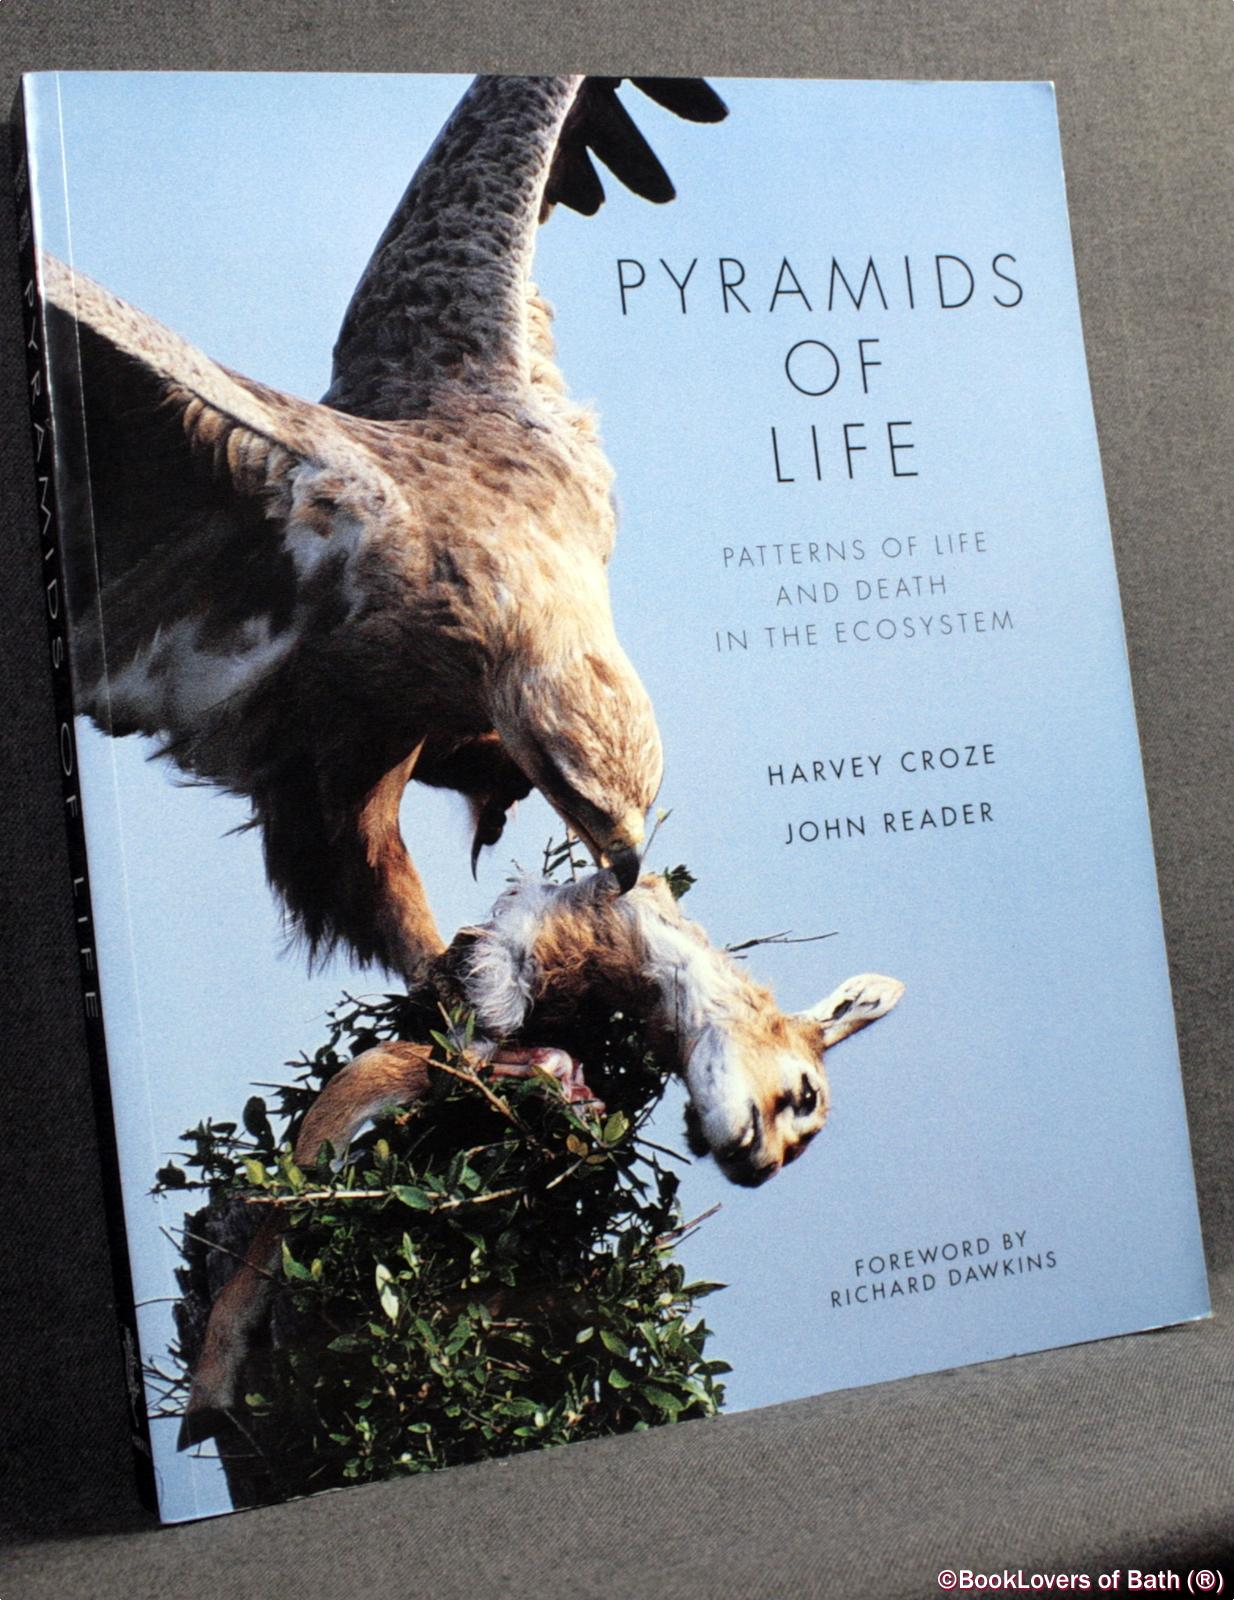 Pyramids of Life: Patterns of Life and Death in the Ecosystem - Harvey Croze & John Reader